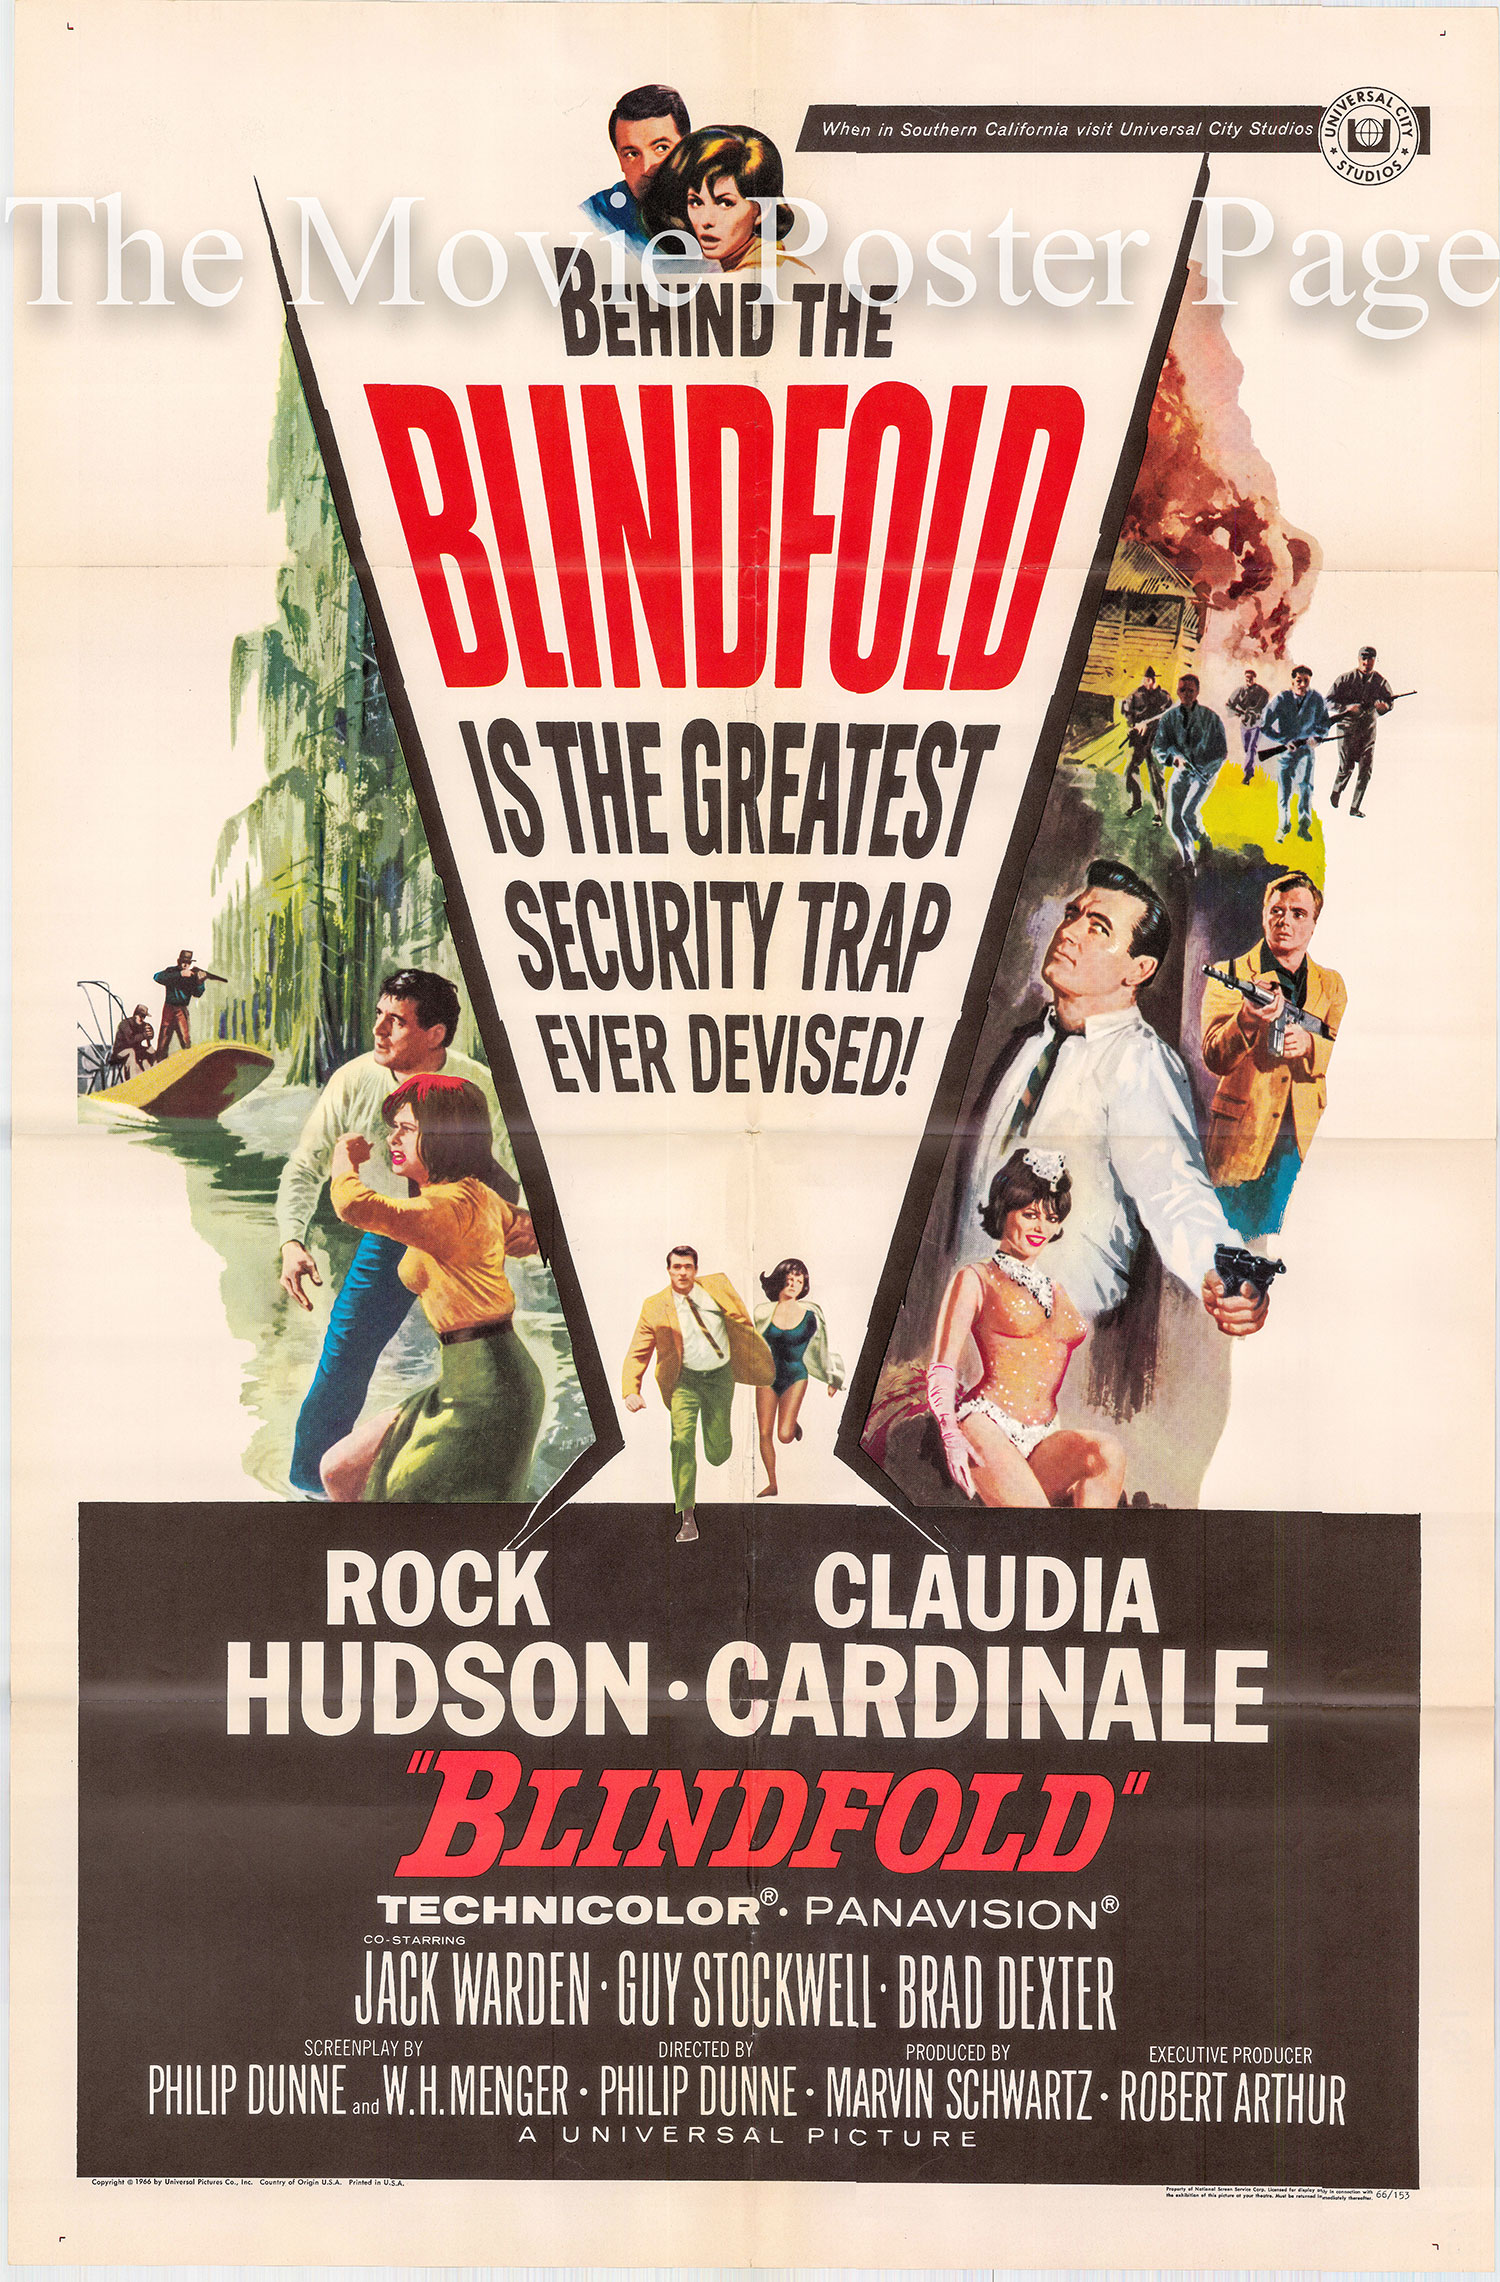 Pictured is a US one-sheet poster for the 1966 Philip Dunne film Blindfold starring Rock Hudson.